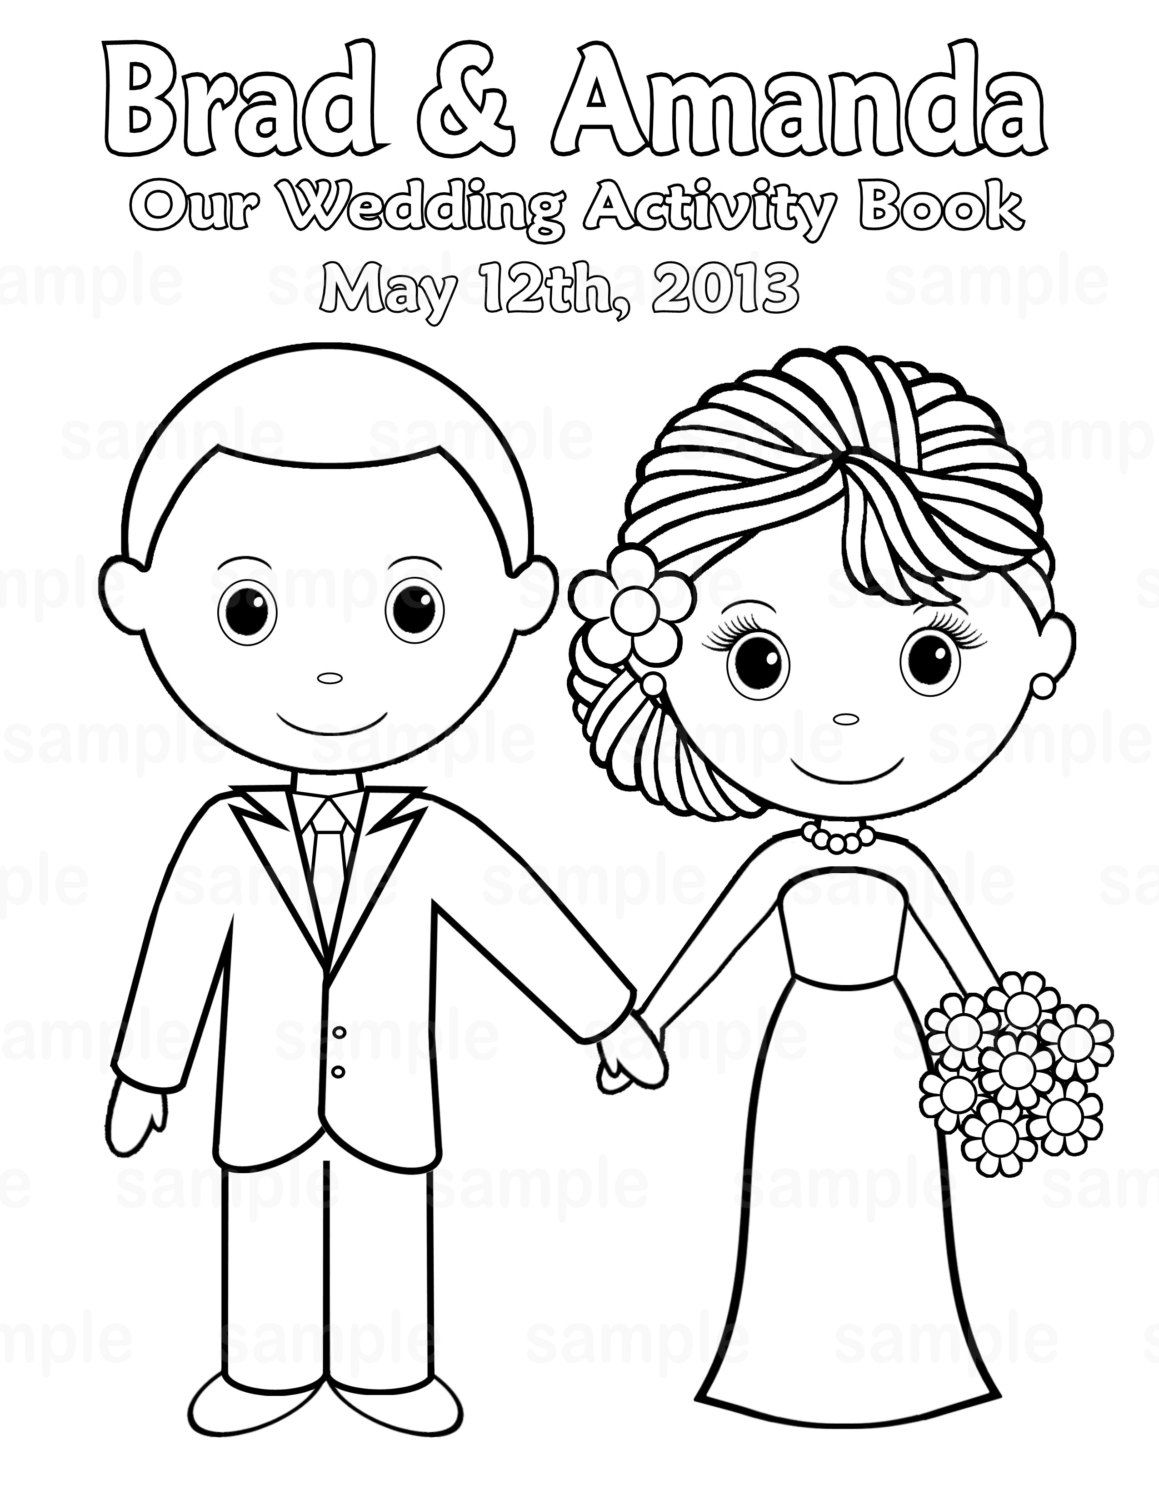 free printable coloring pictures wedding  Printable Personalized Wedding activity book Favor Kids 8 5 x